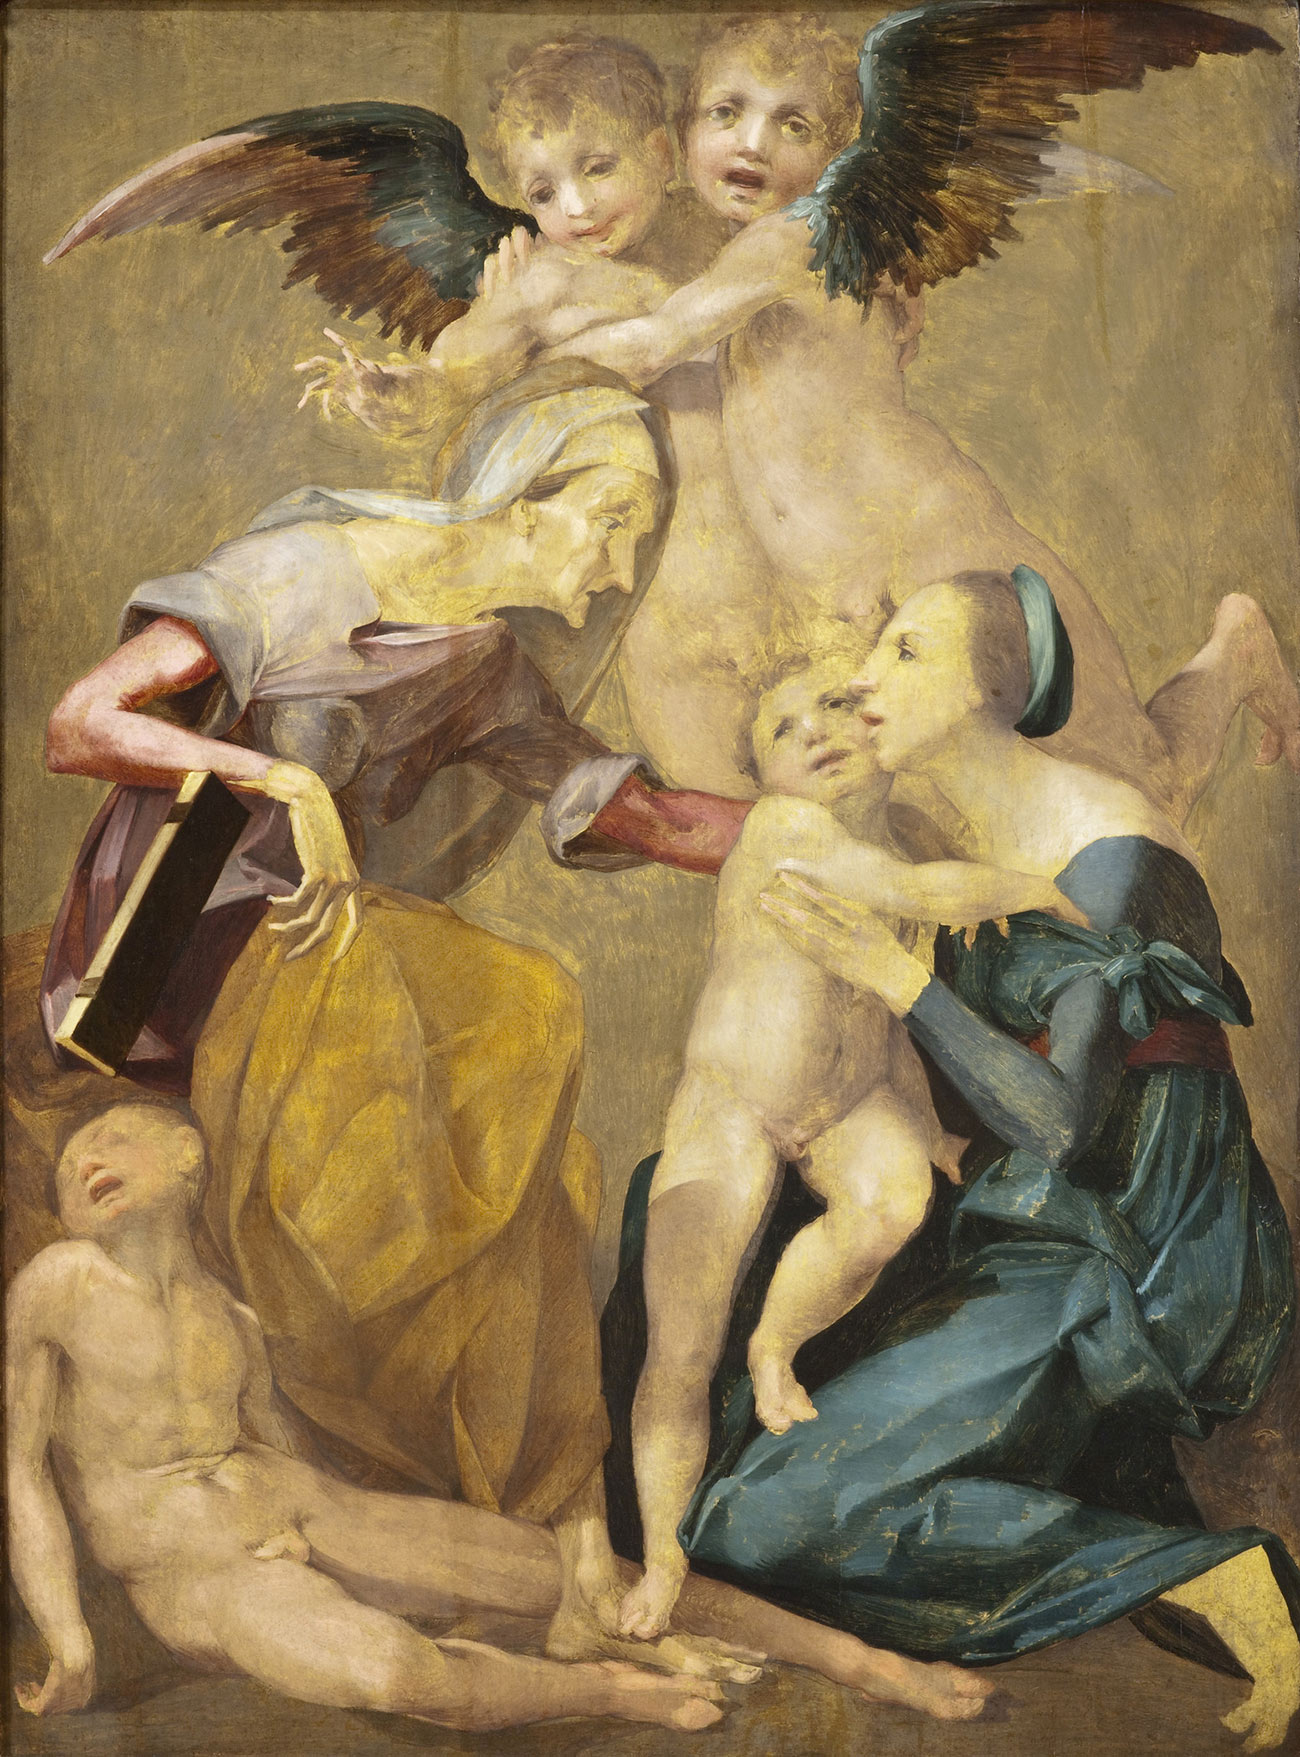 Painting of two women, the older one in a gold skirt with a dead or unconscious boy at her feet, and the younger in a blue dress holding a nude boy. Two angels hover behind them, dark wings extended.